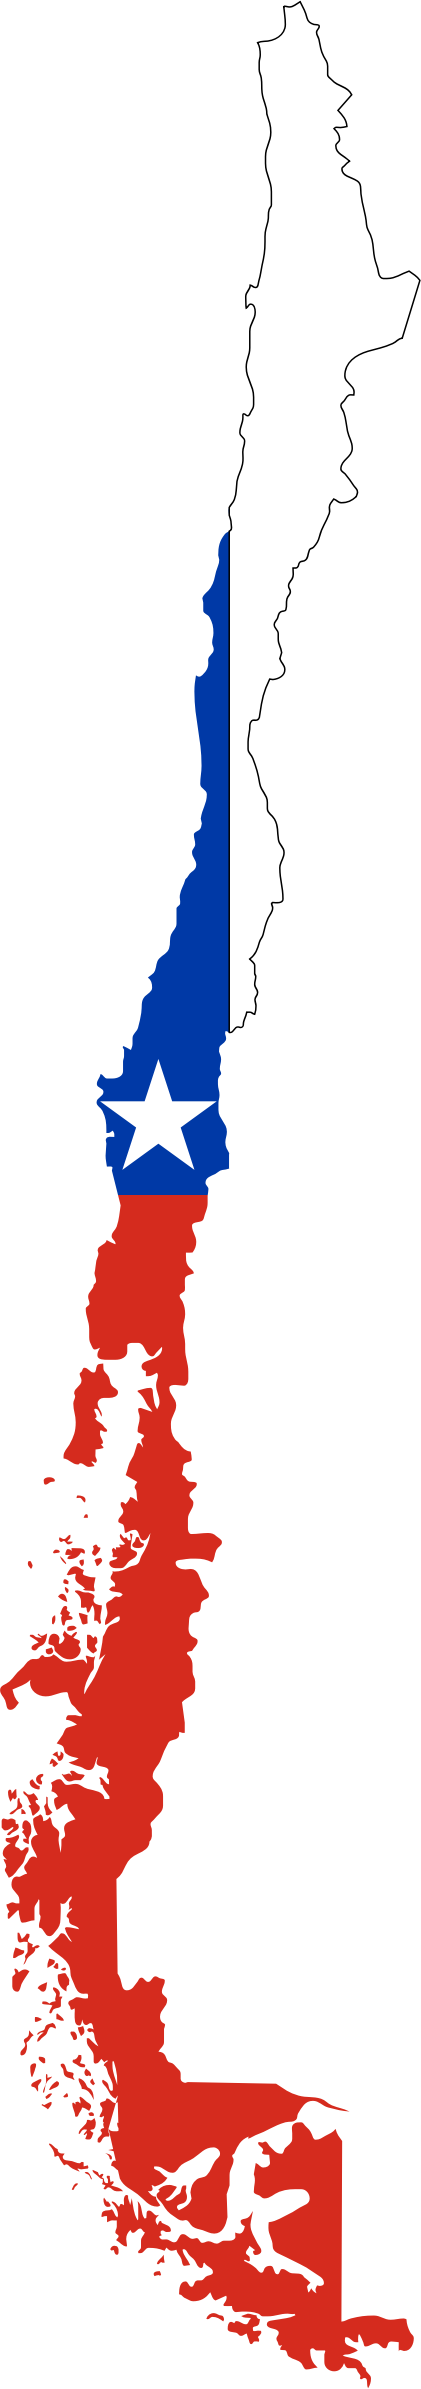 Chile clipart transparent Chile Map Flag Map Chile